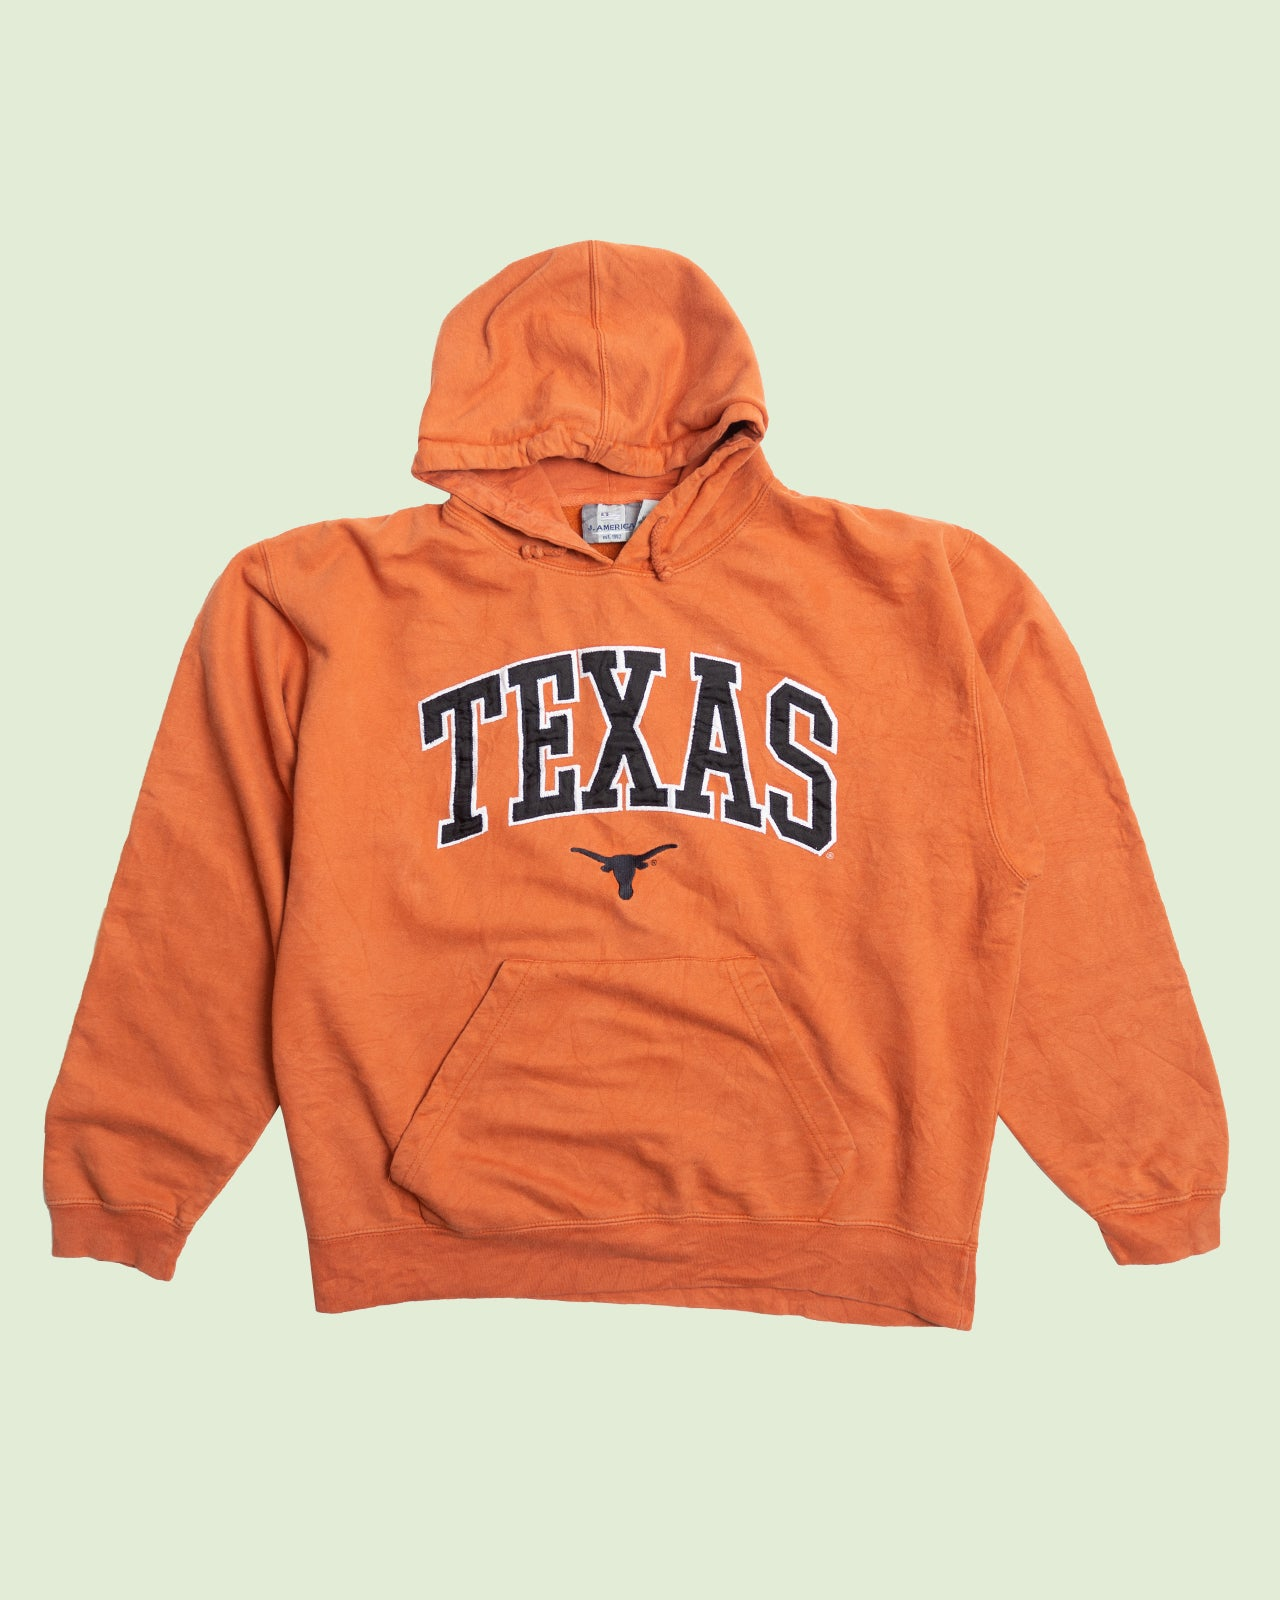 Texas Sweater (XL)